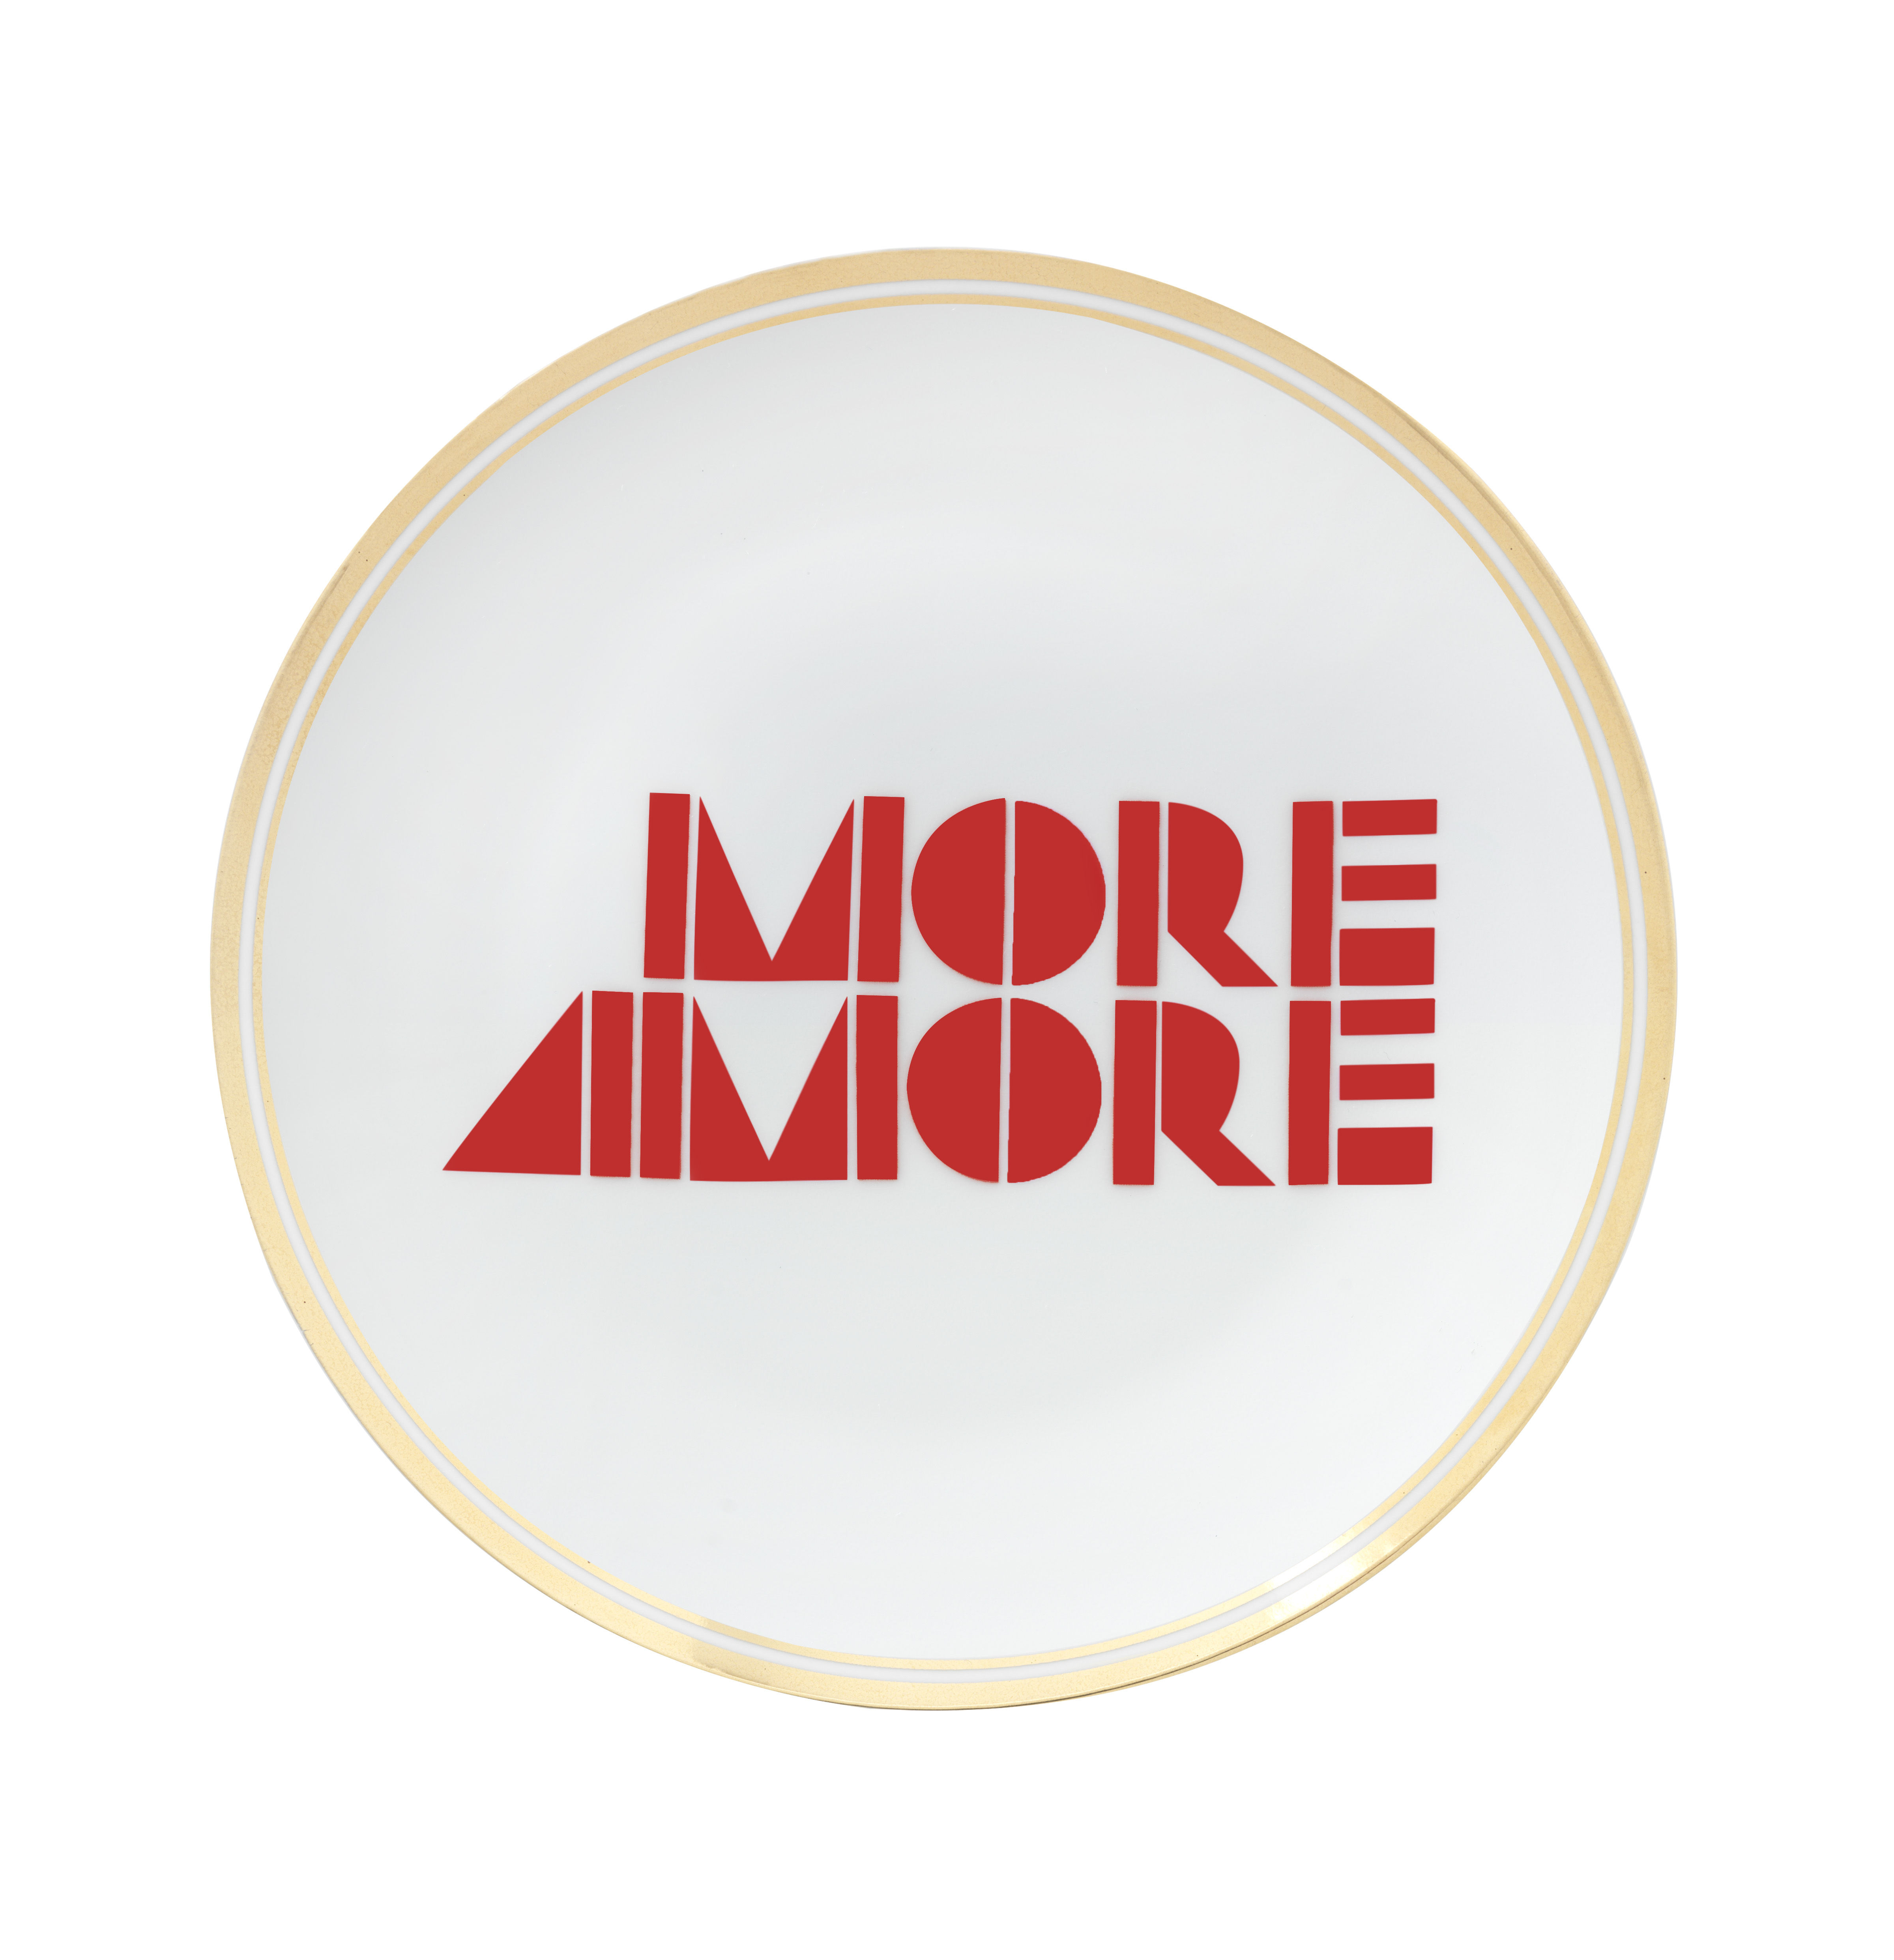 Tableware - Plates - More Amore Dessert plate - / Ø 17 cm by Bitossi Home - More Amore - China